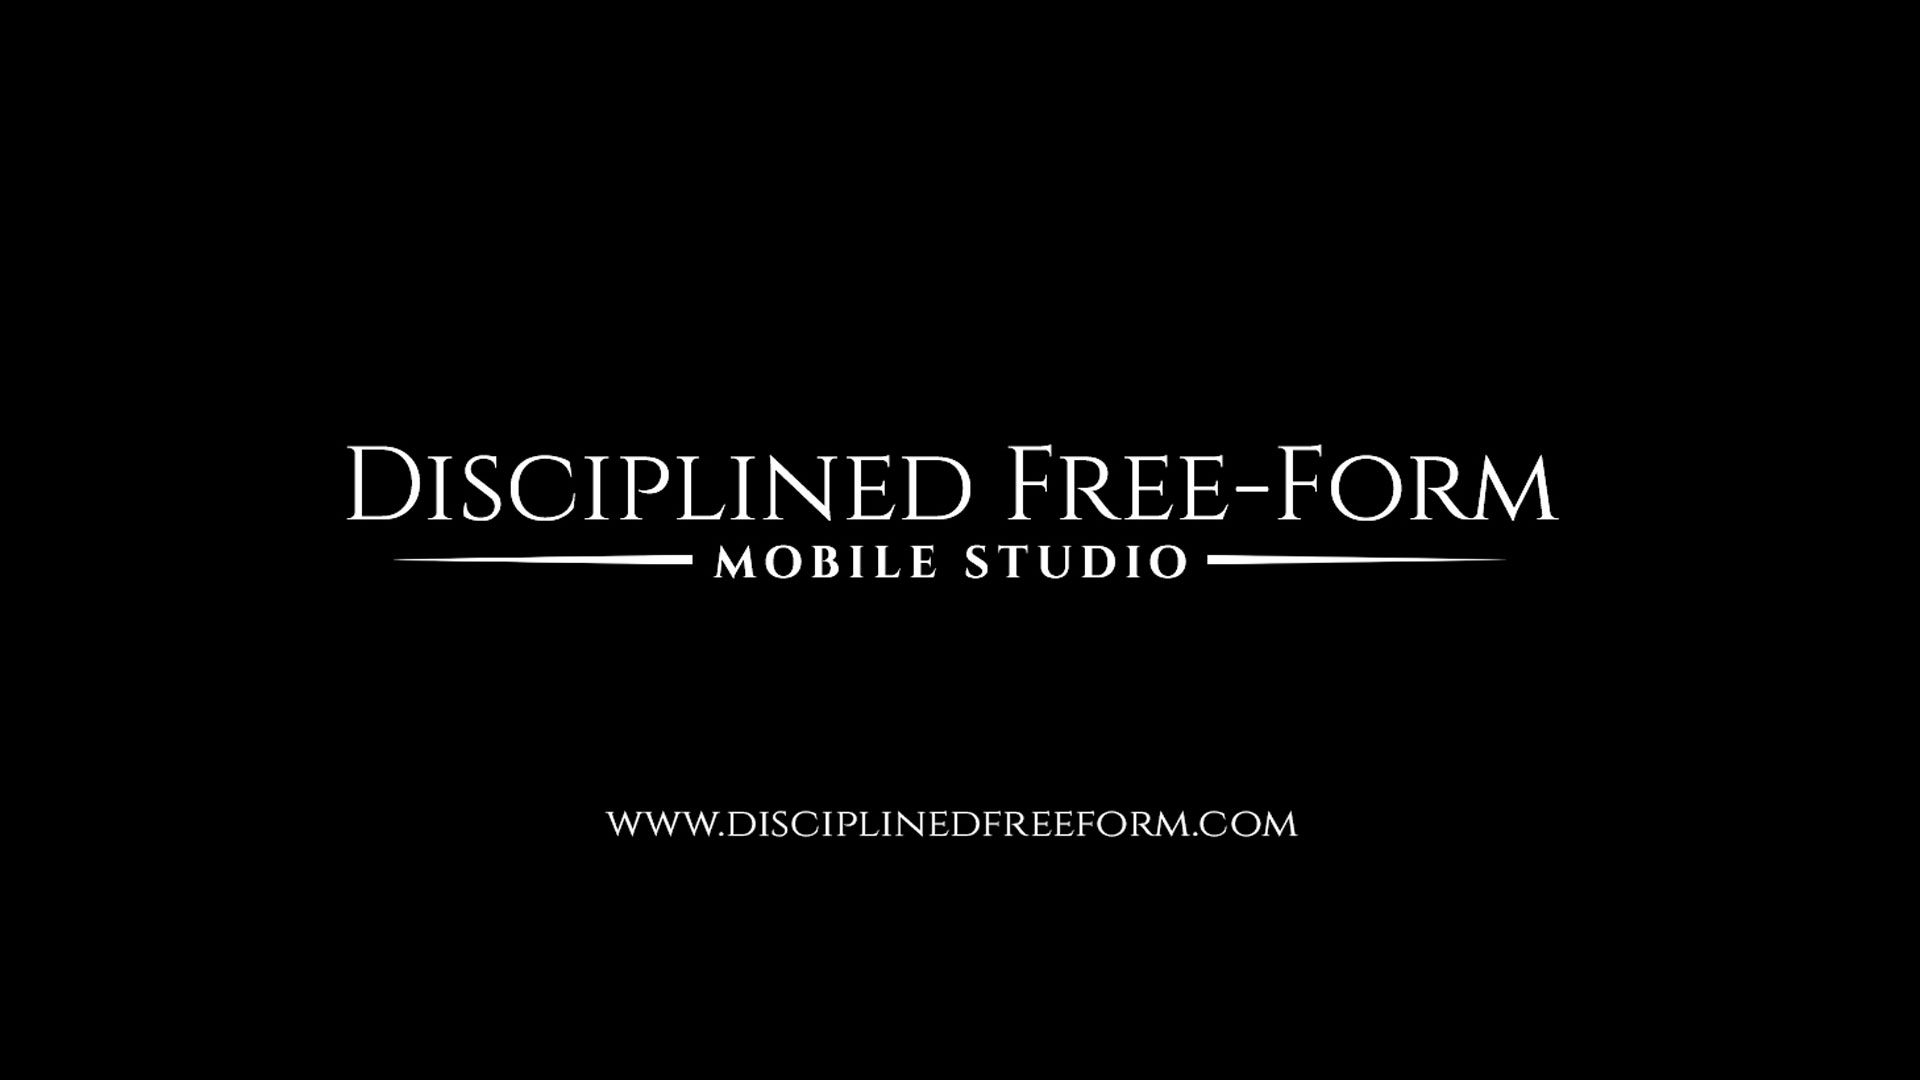 Disciplined-Free-Form-Text-HeaderMAINinverted